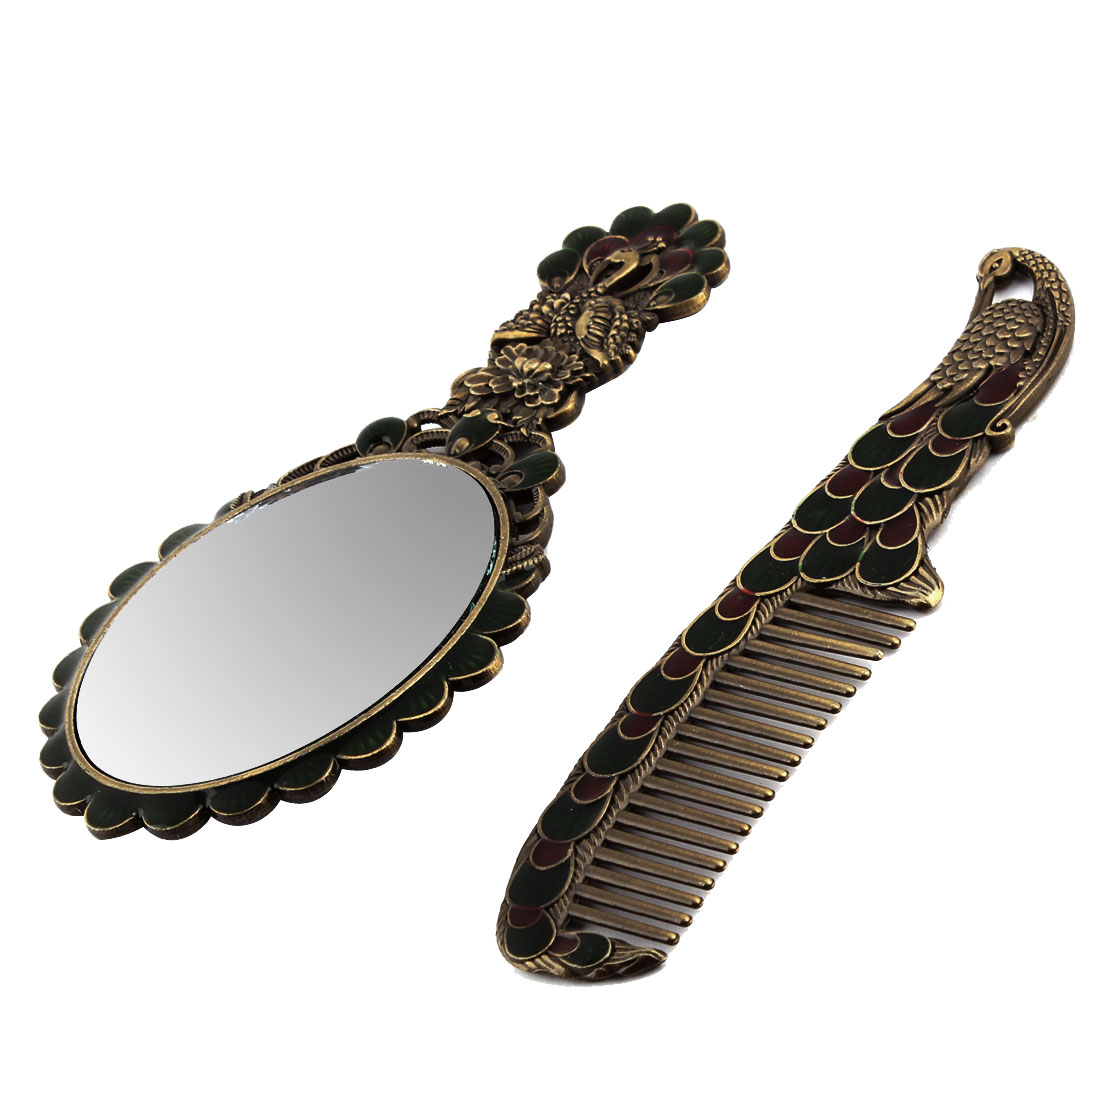 Lady Peacock Pattern Vintage Style Rhinestone Decor Makeup Mirror Comb 2 in 1